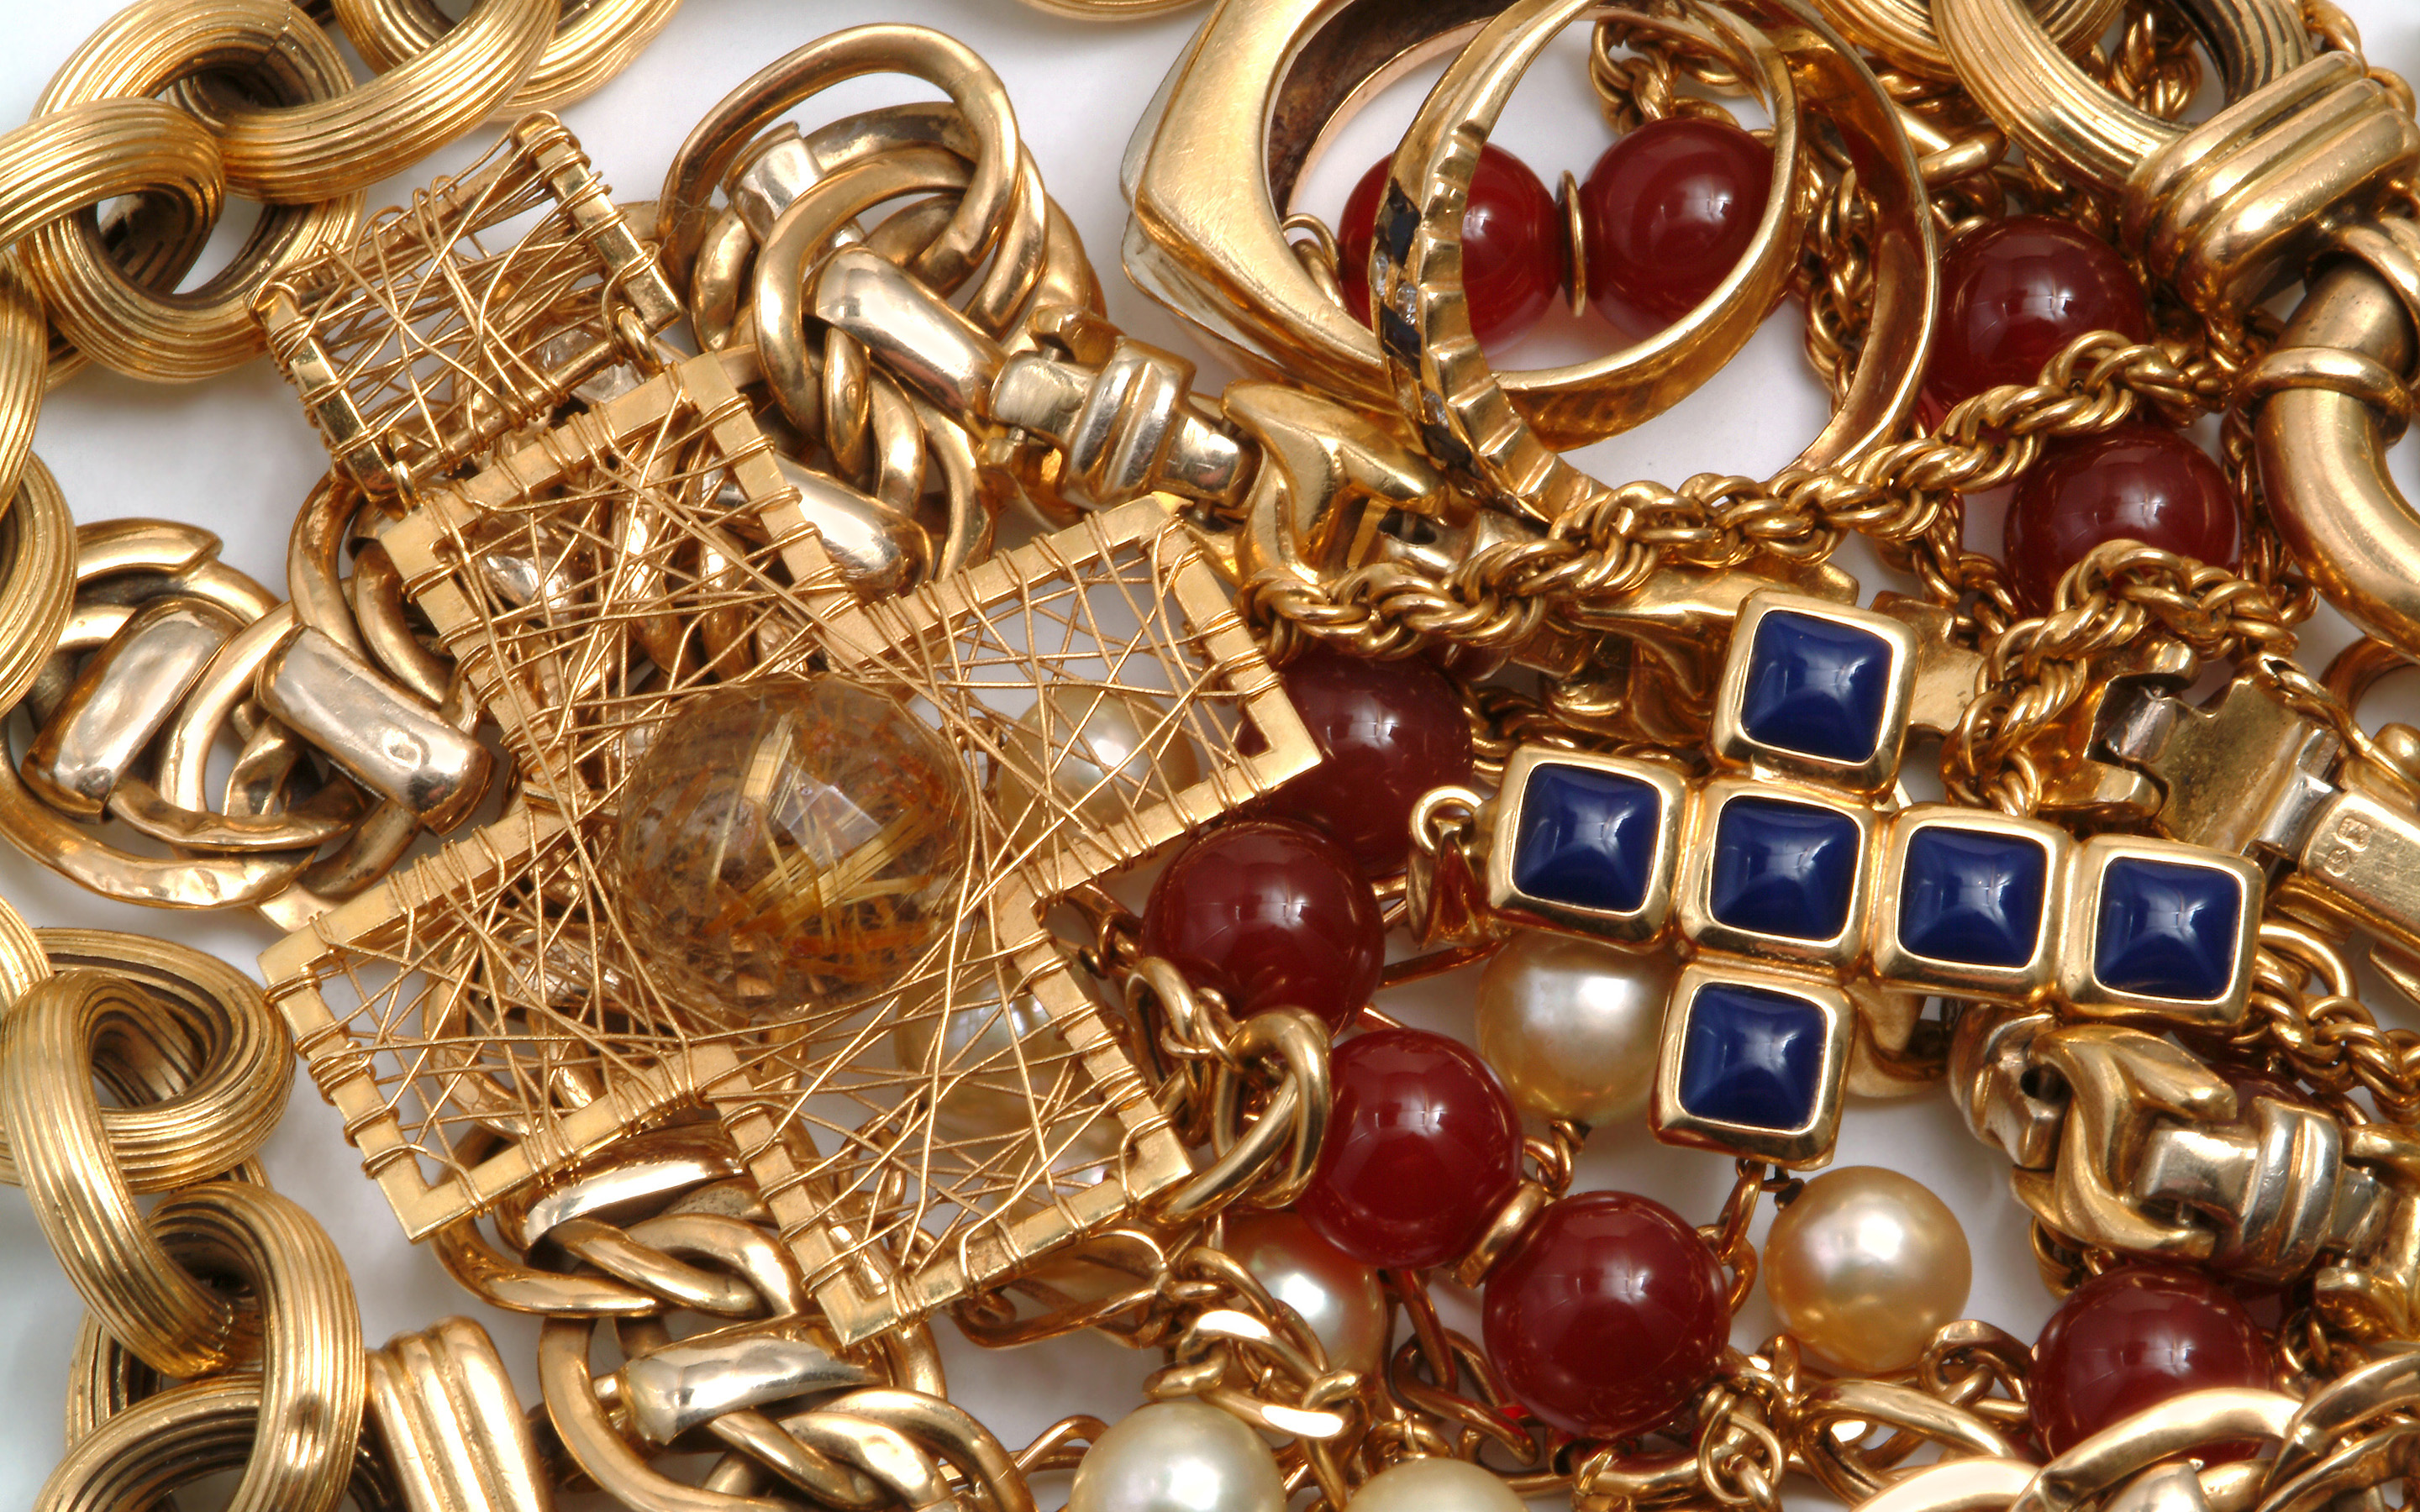 86 Jewelry HD Wallpapers   Backgrounds - Wallpaper Abyss